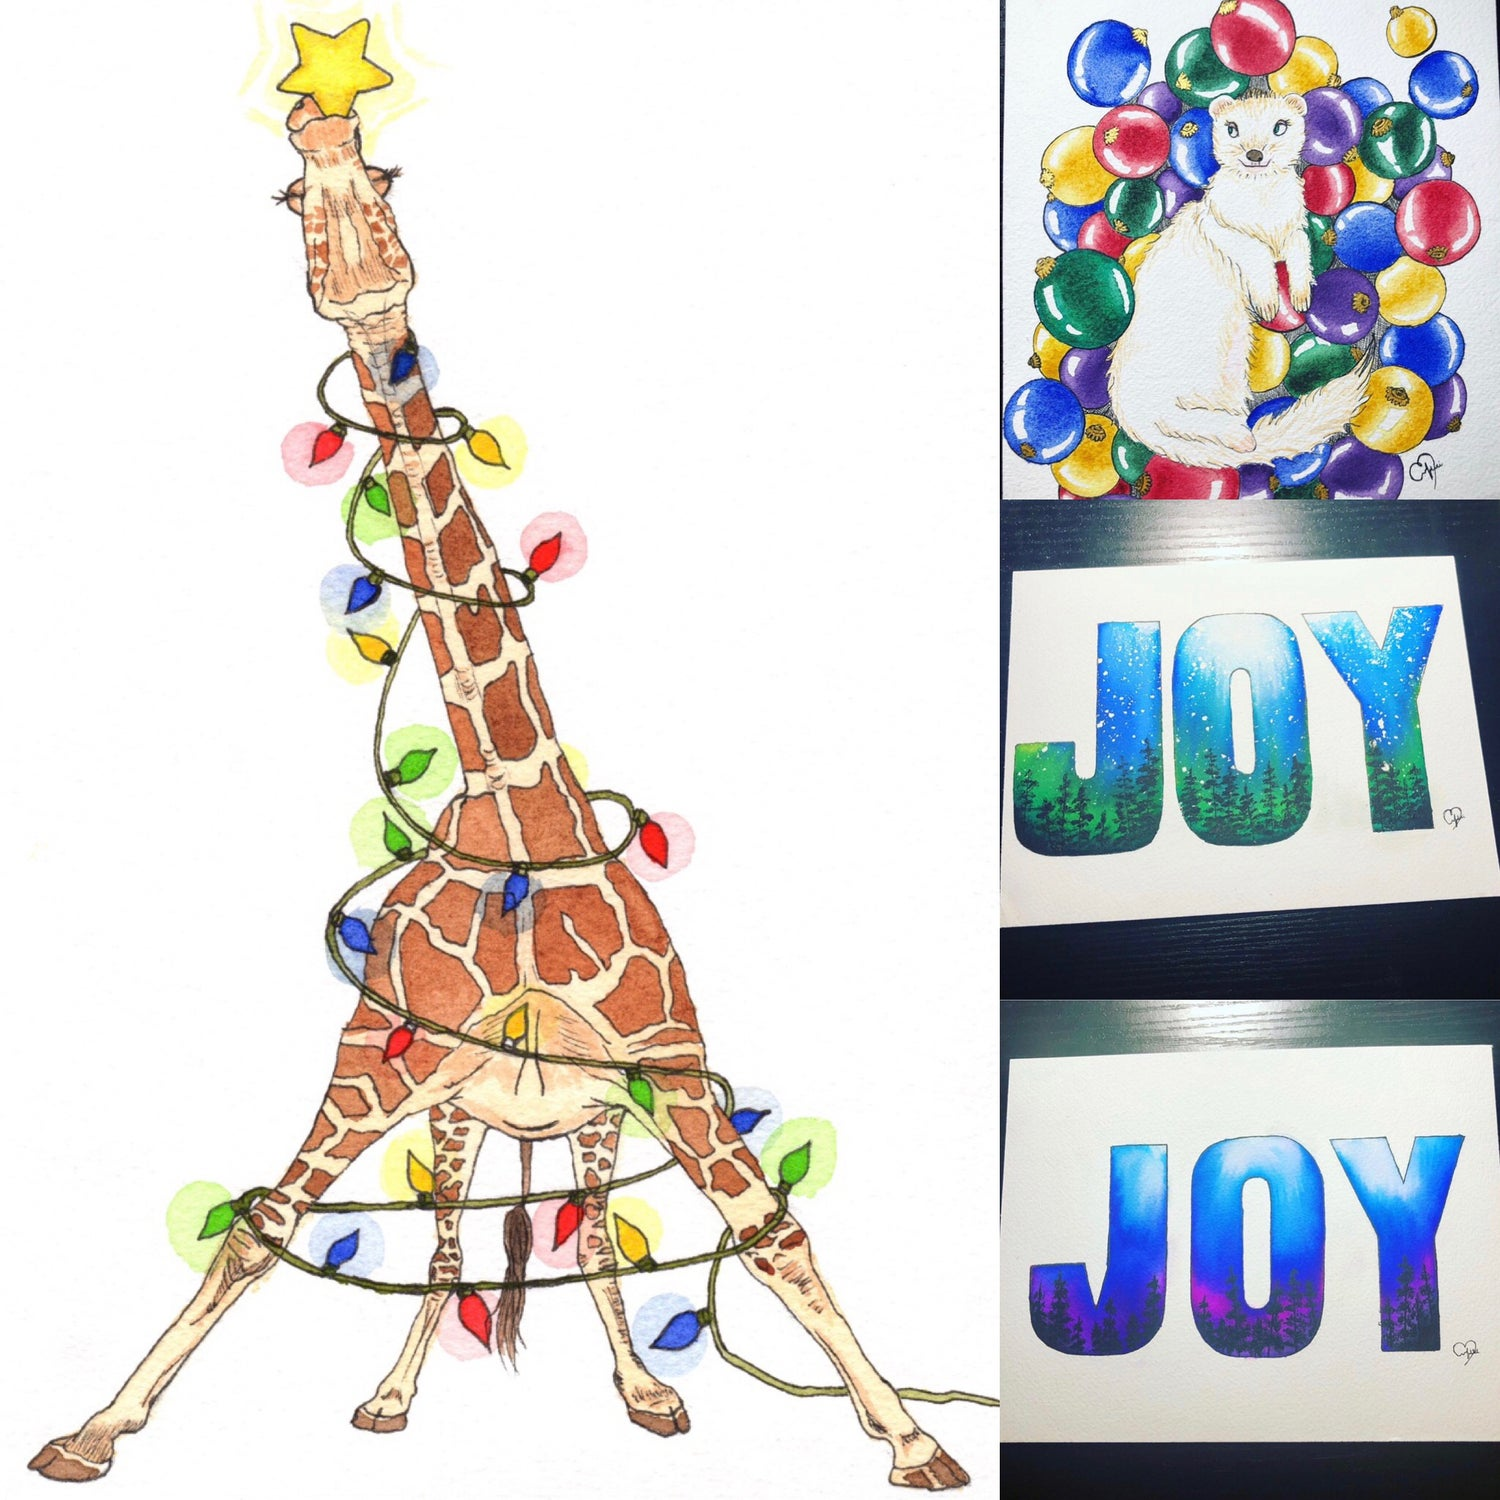 Image of Coming soon! Set of 4 holiday greeting cards!